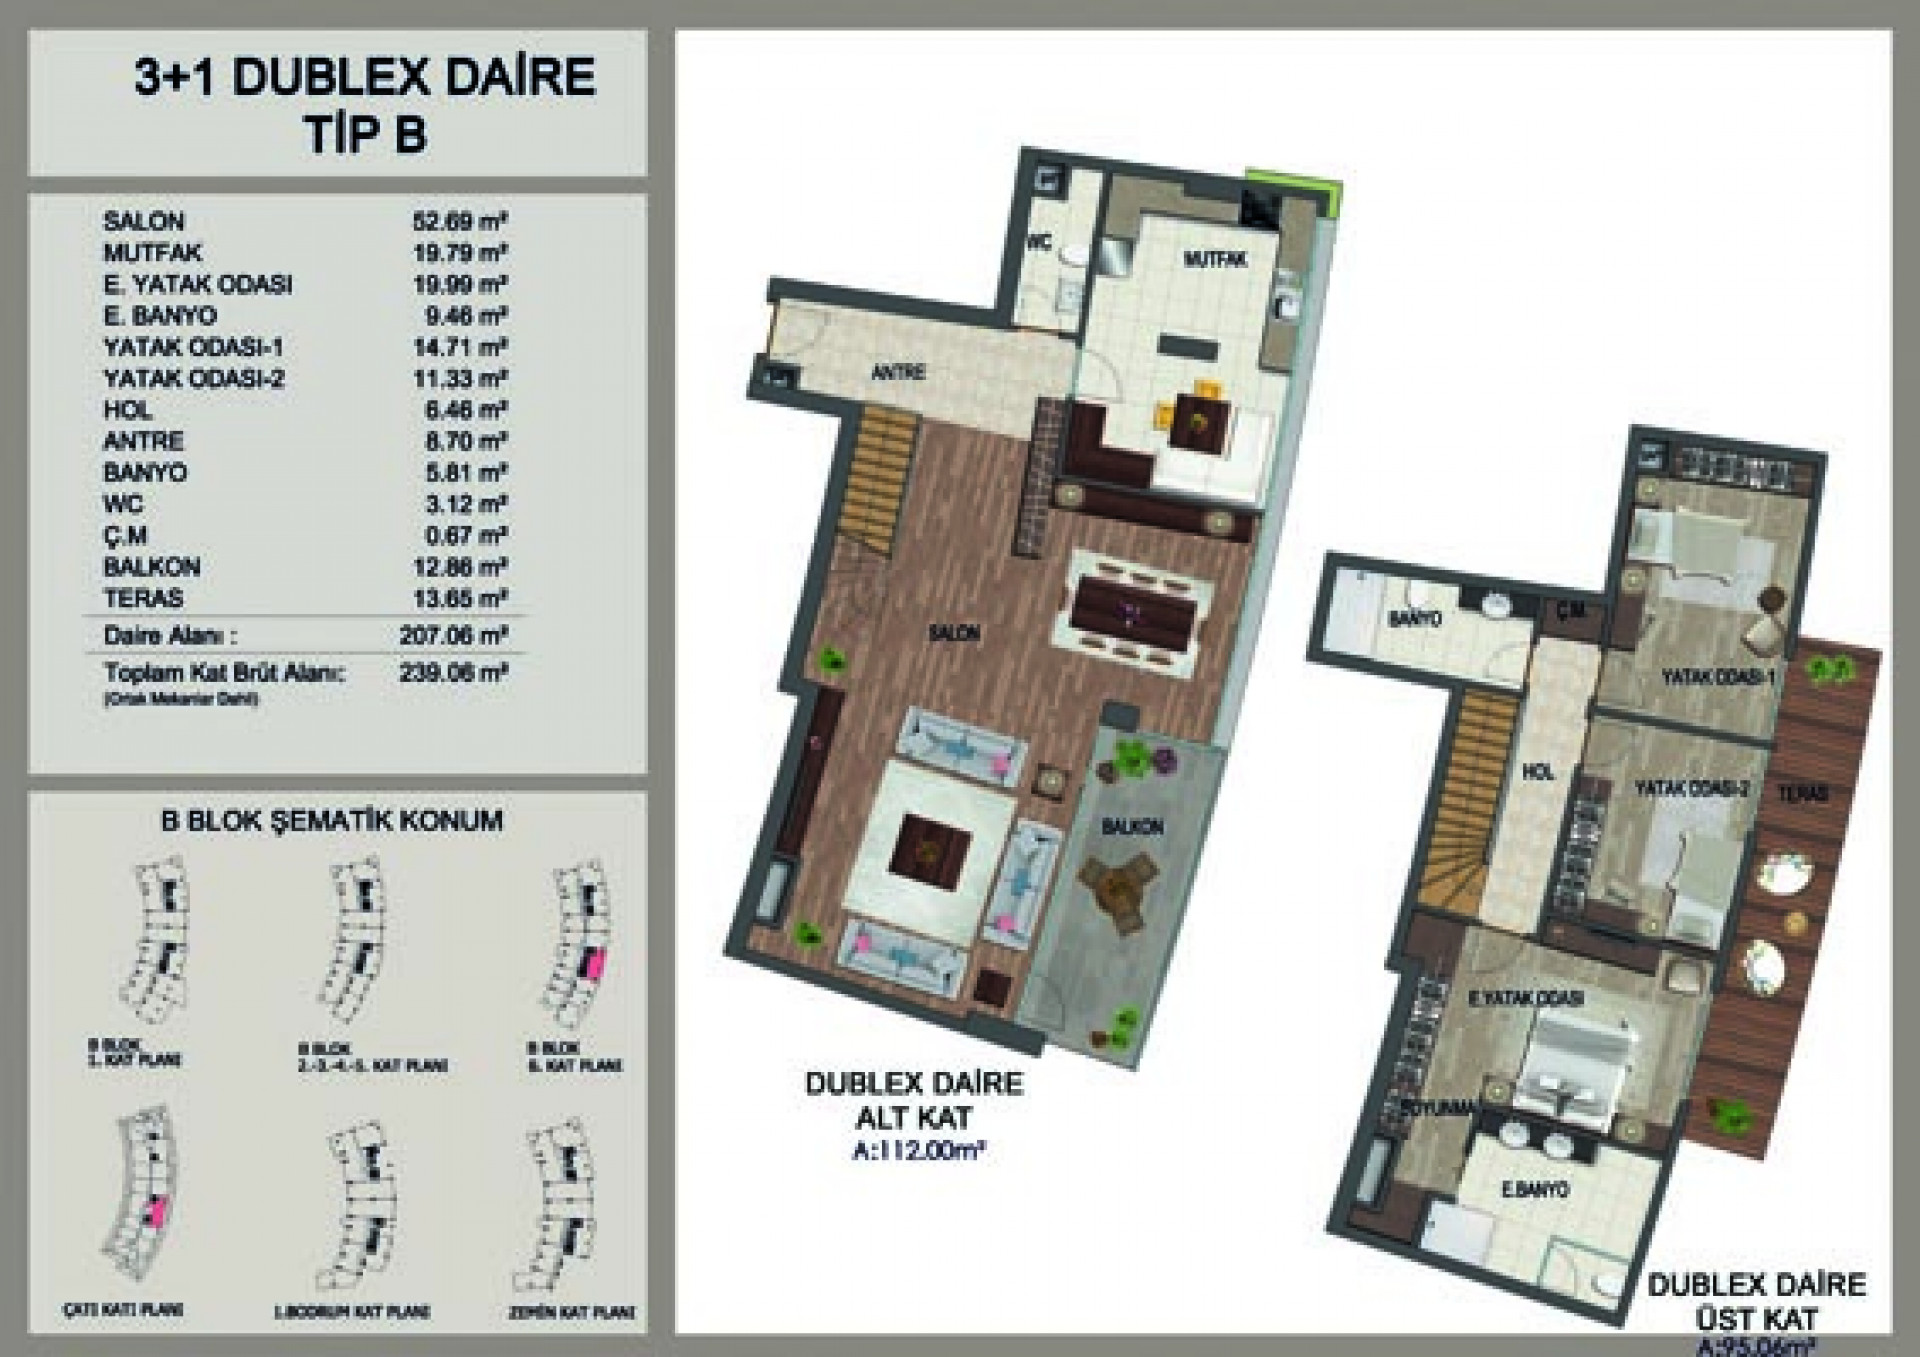 Apartment duplex  3+1